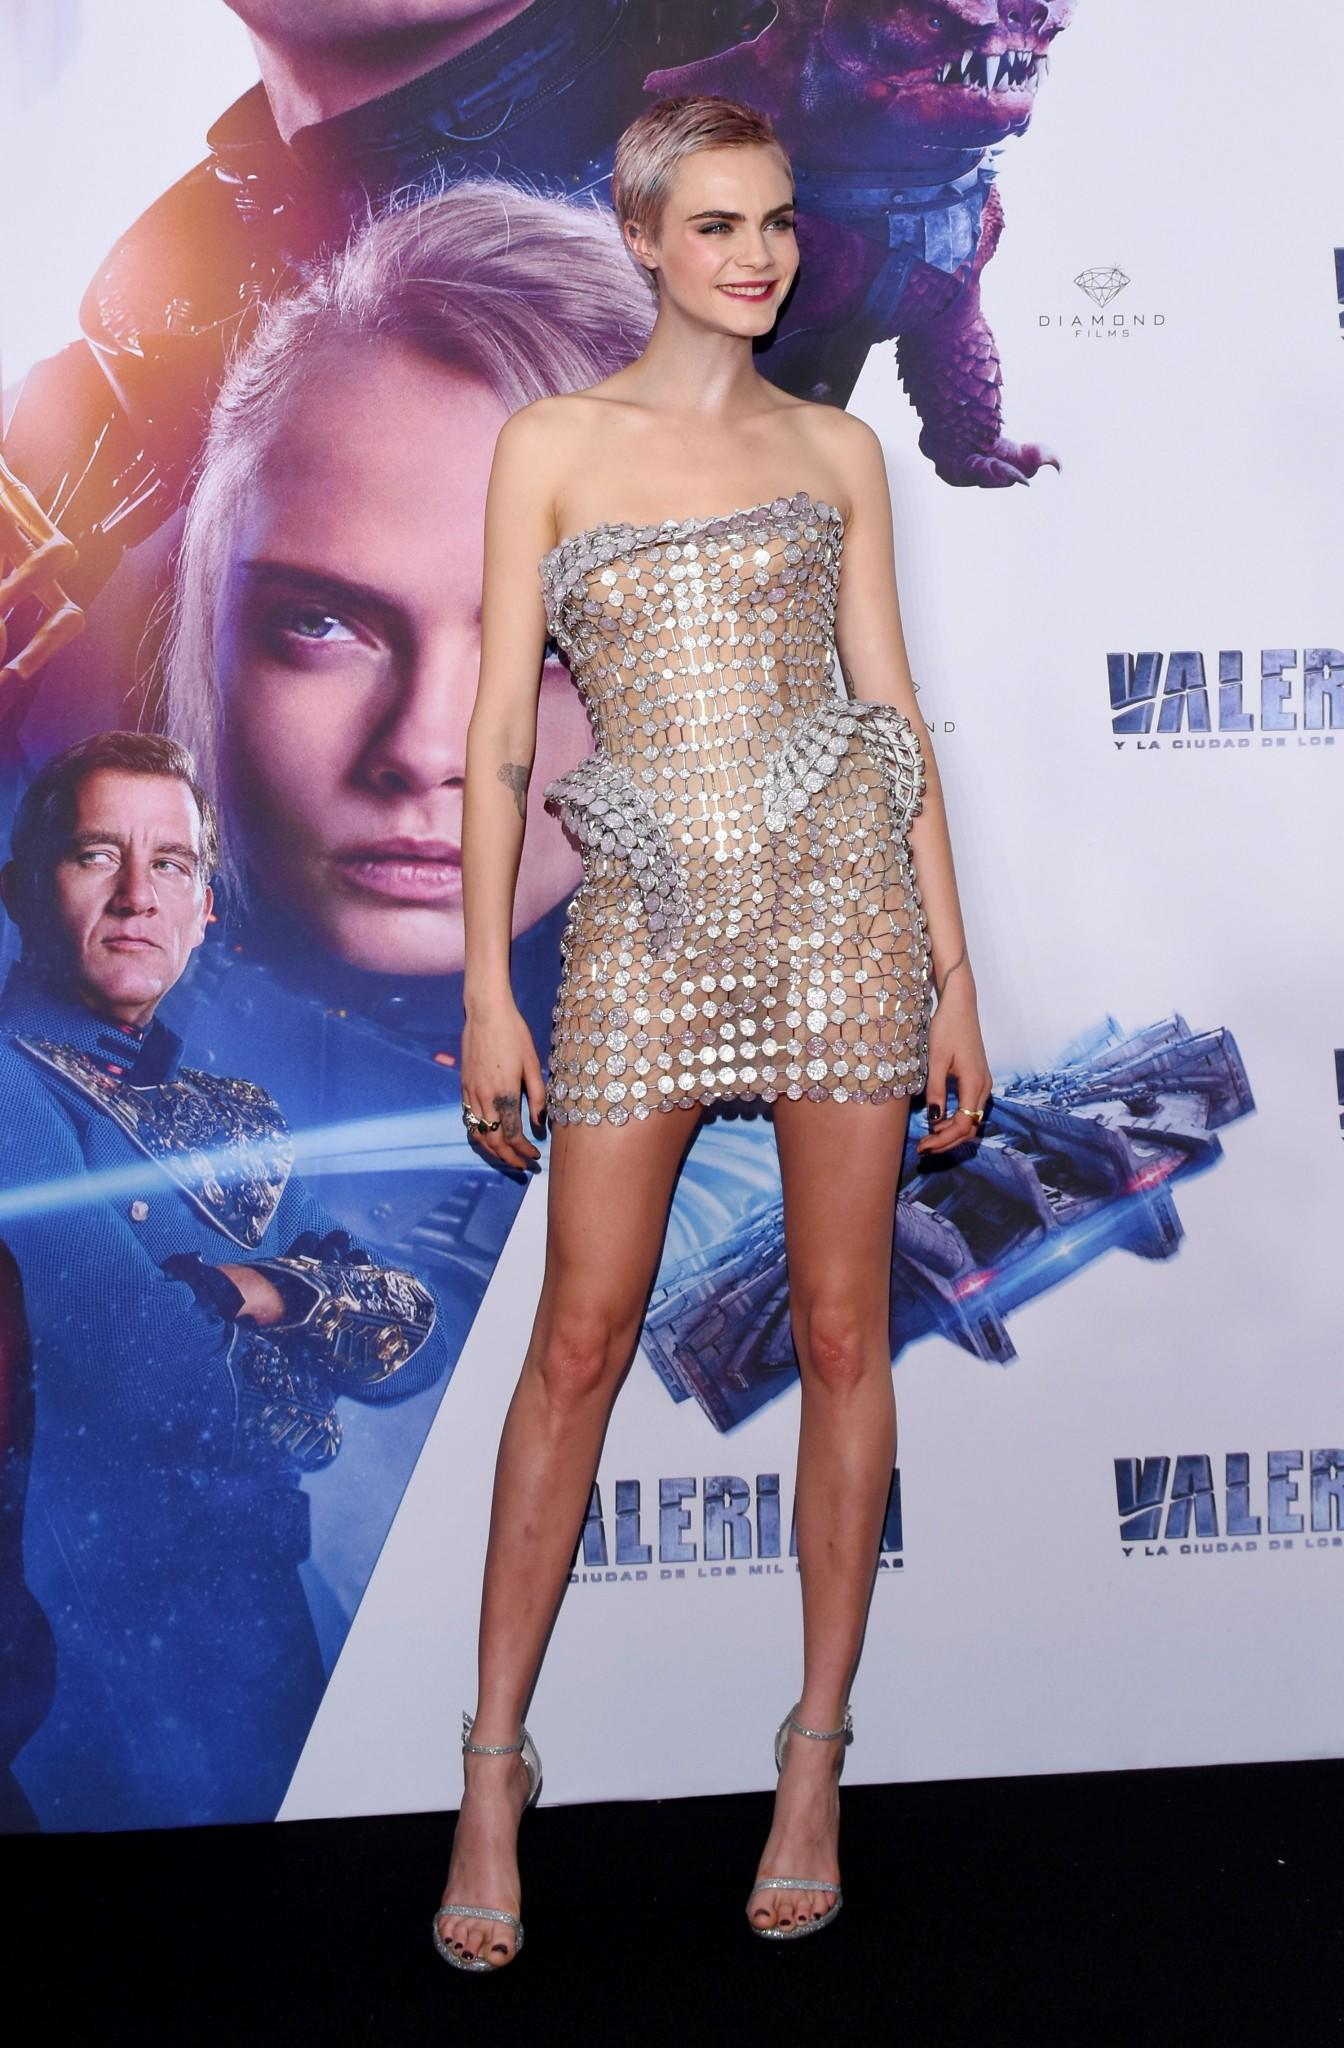 Model applied to british media coverage of iran nuclear deal - Rihanna And Cara Delevingne Continue To Wow With Dramatic Valerian Premiere Outfits